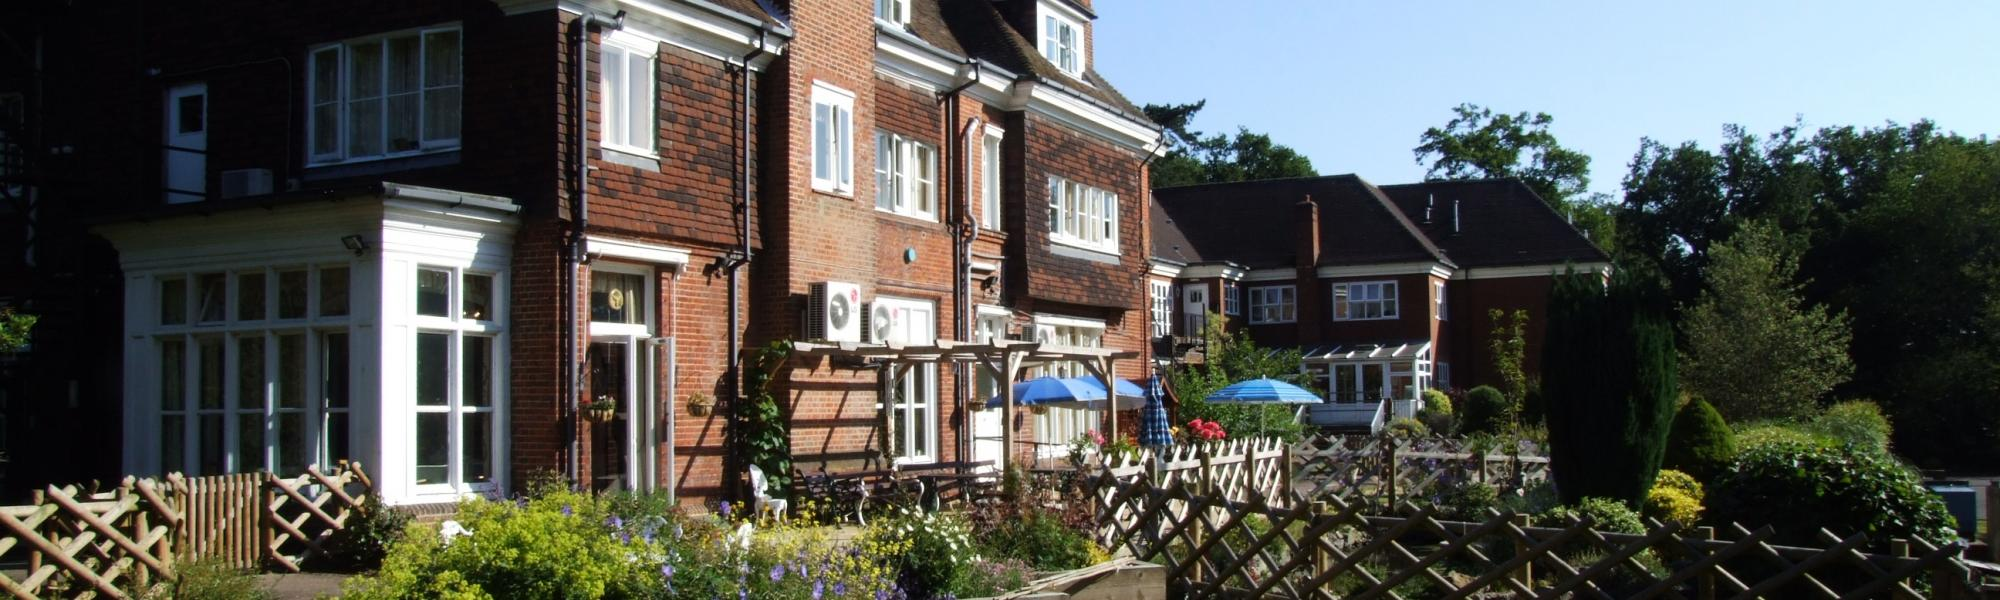 brighterkind Houndswood House Care Home in Radlett